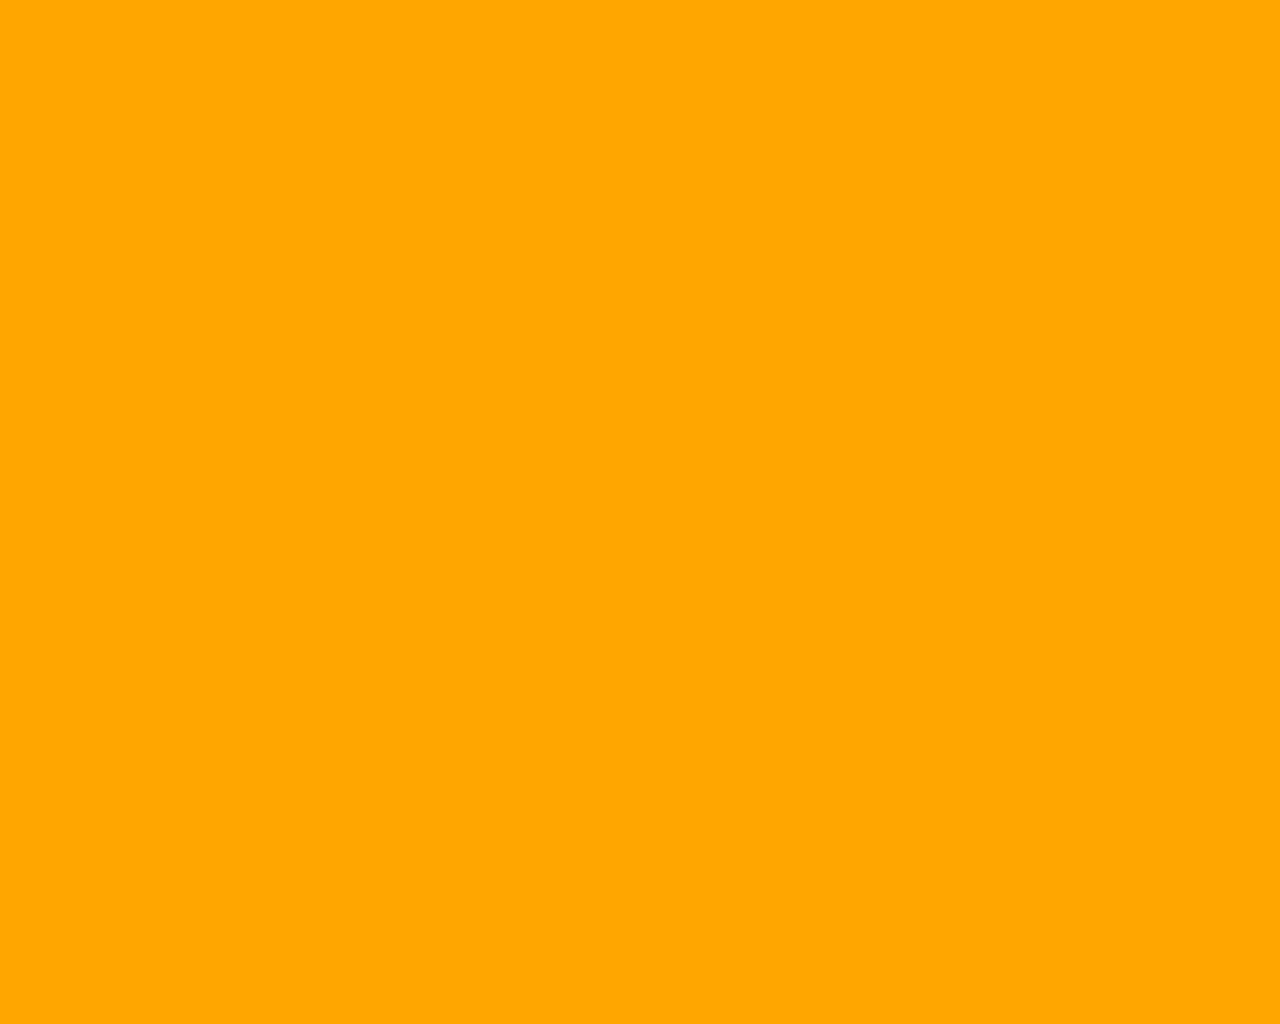 1280x1024 Chrome Yellow Solid Color Background